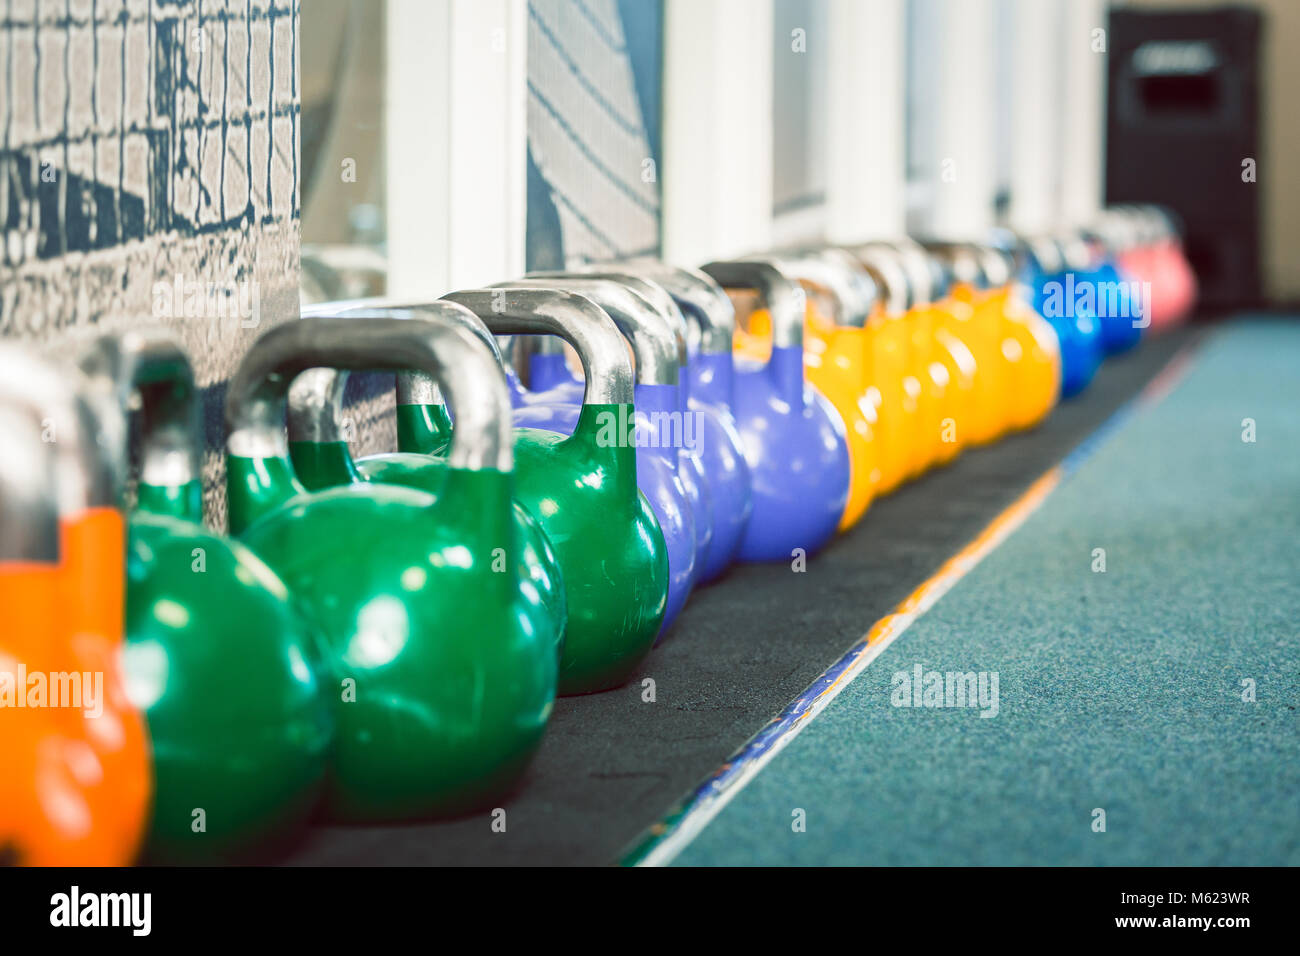 Close-up of kettlebells of various weights and colors - Stock Image